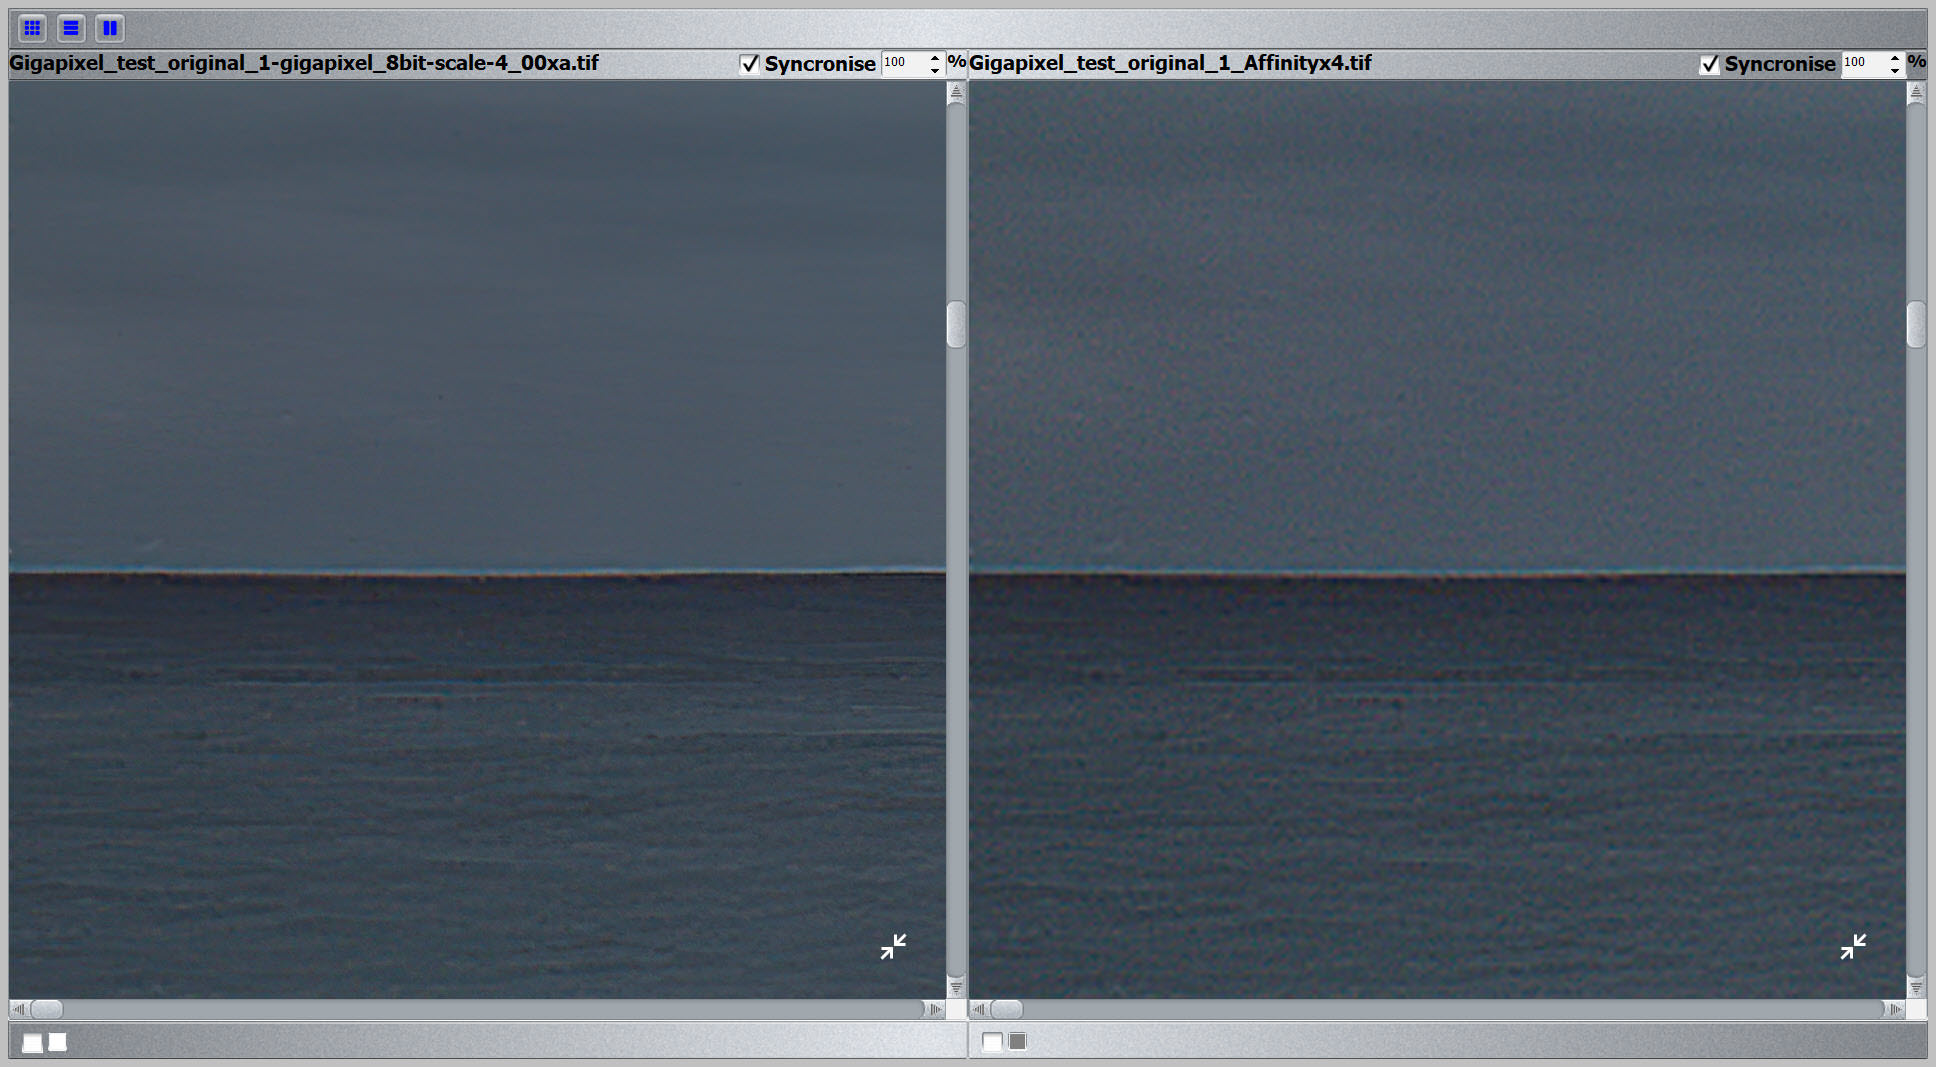 Gigapixel vs Bicubic 400% test